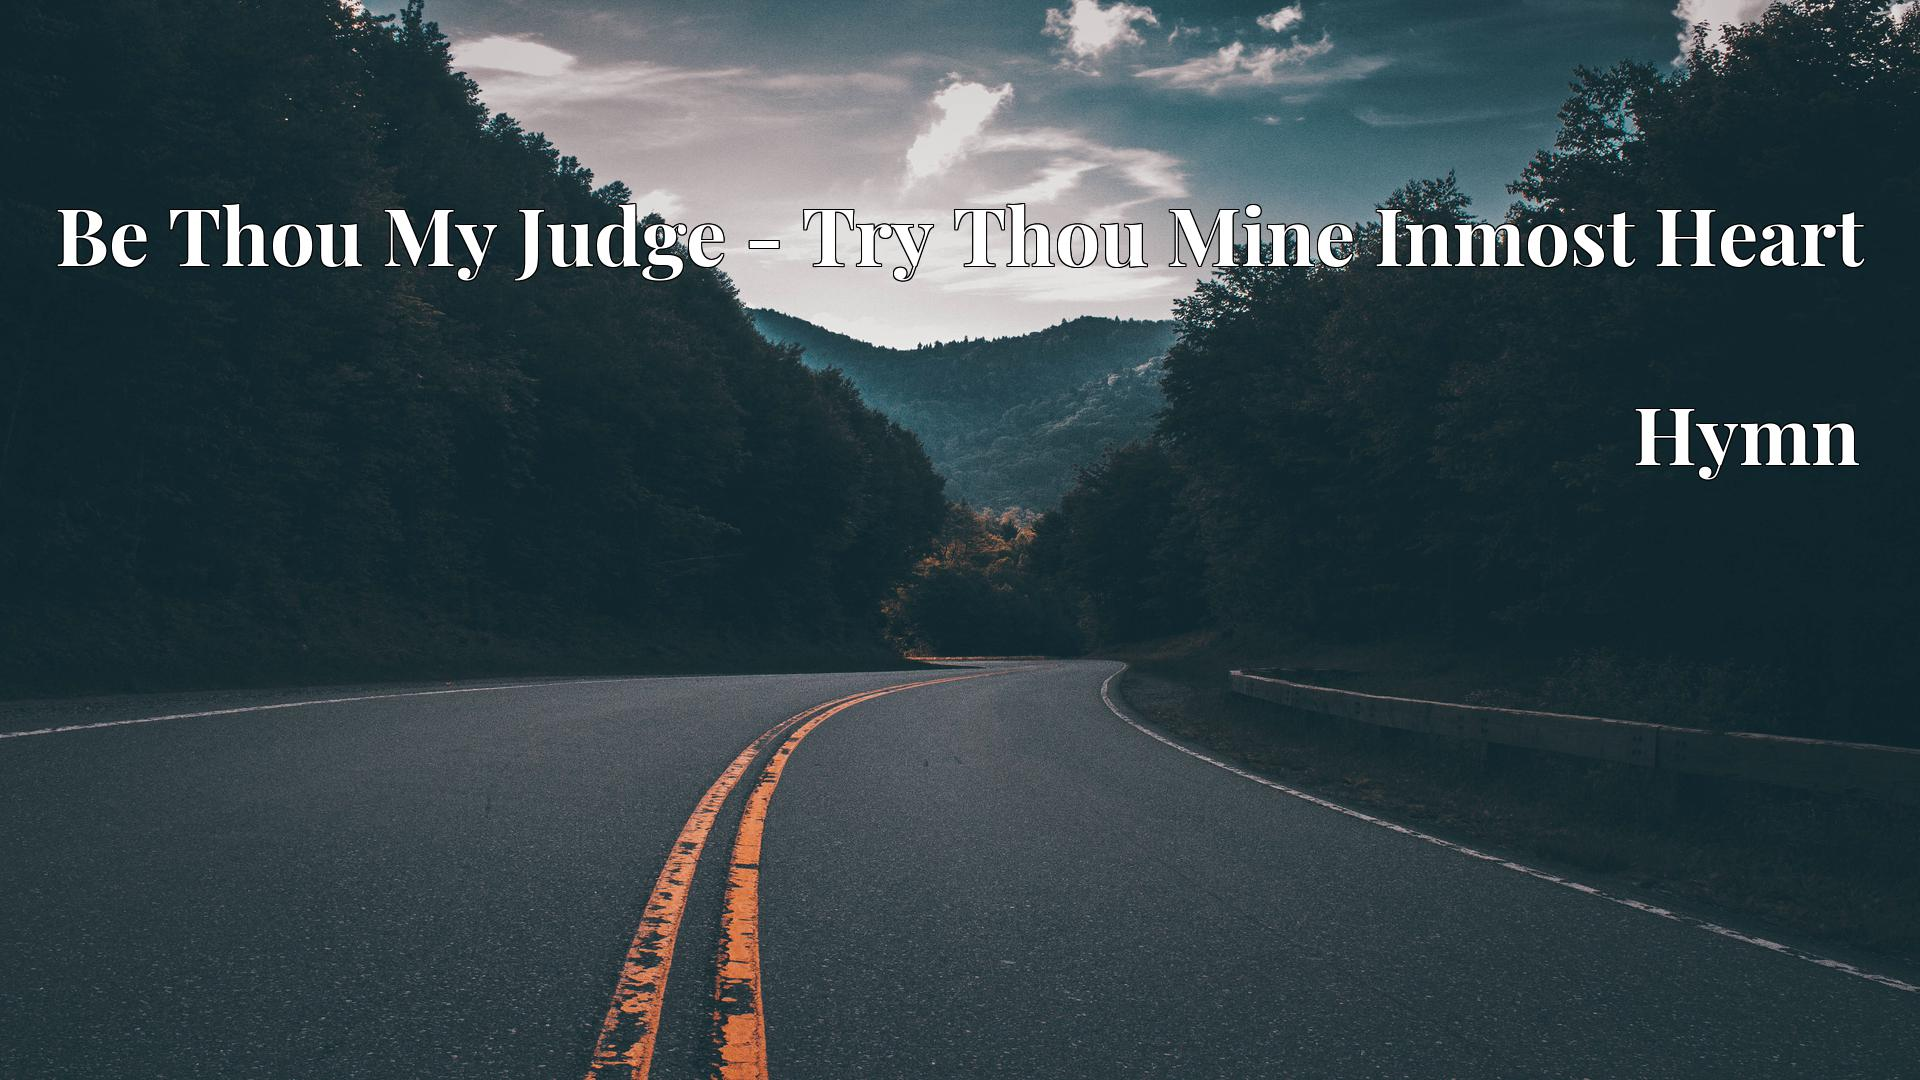 Be Thou My Judge - Try Thou Mine Inmost Heart - Hymn